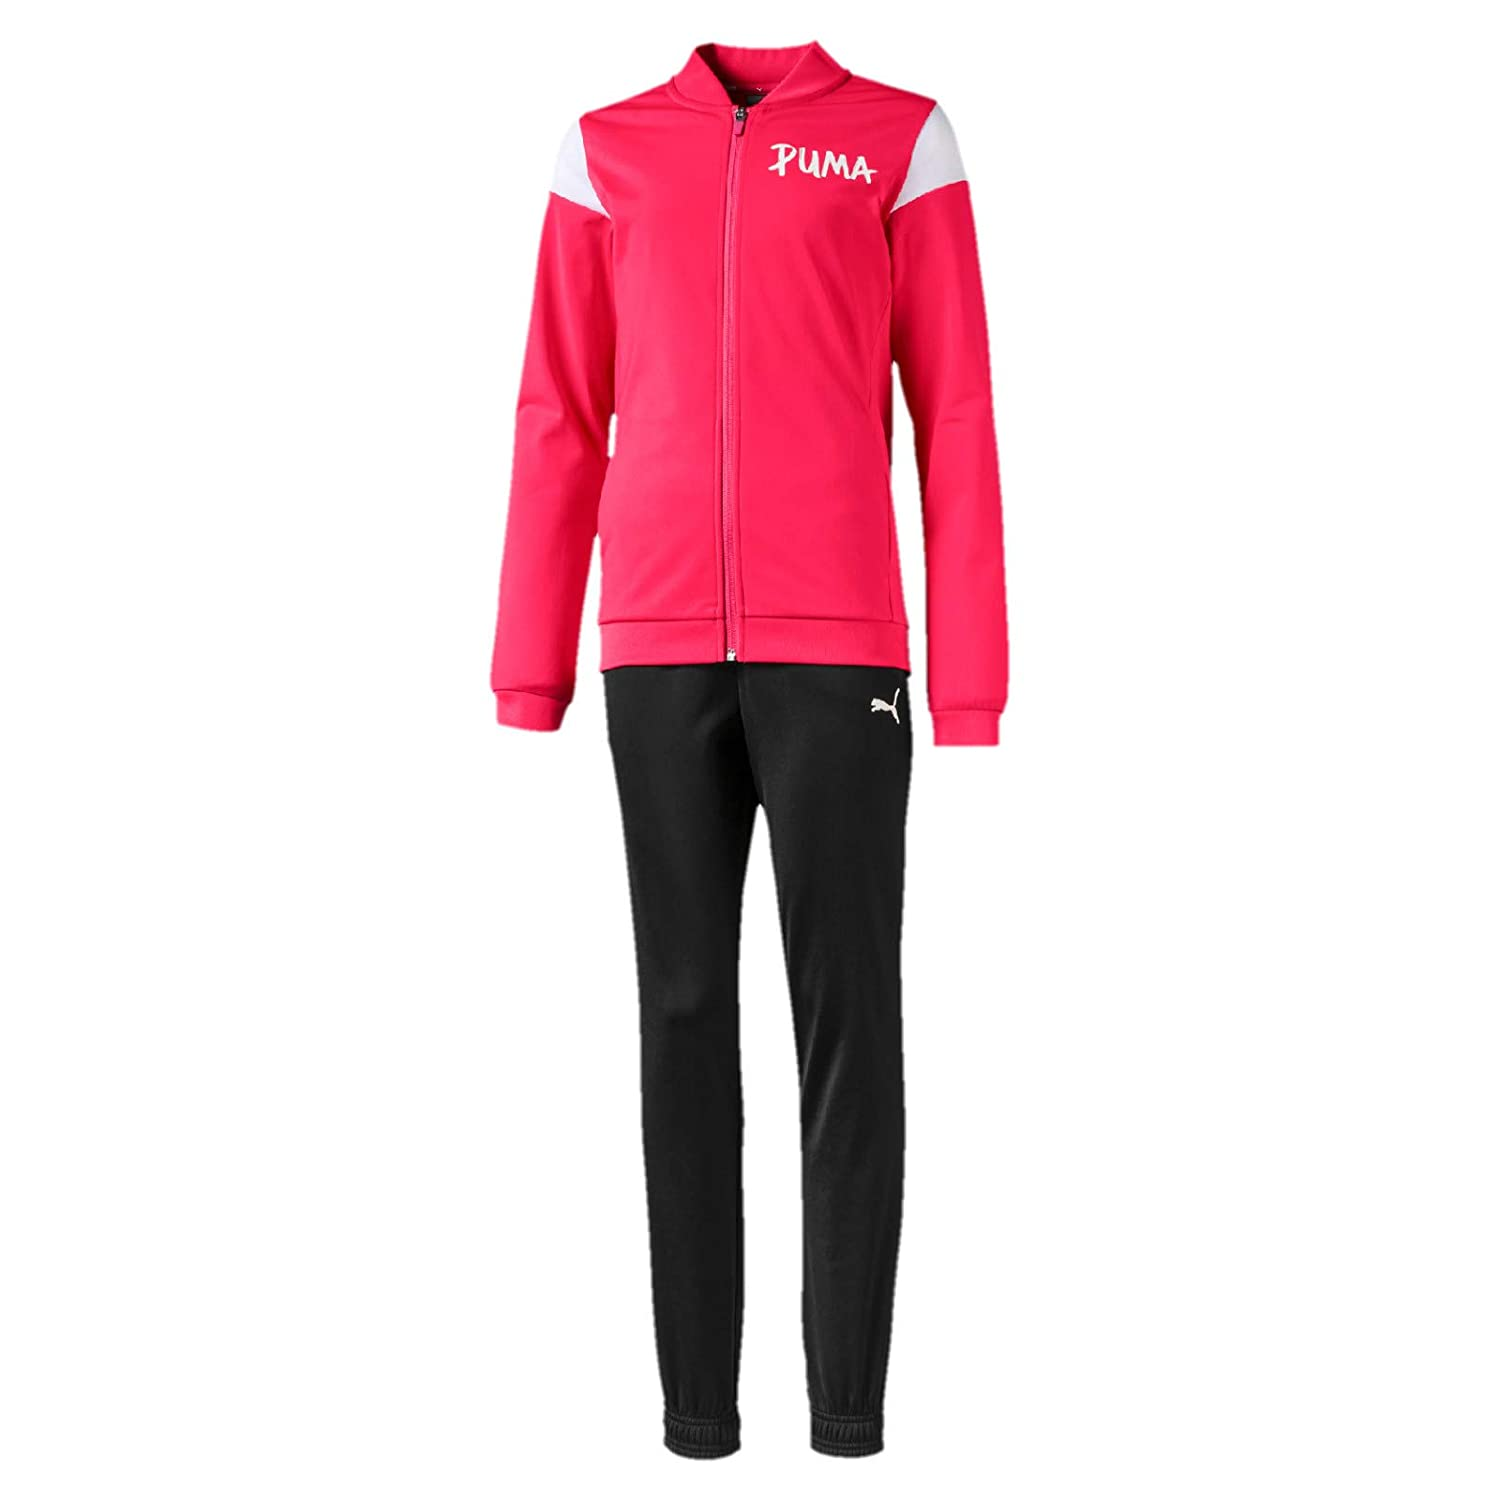 Puma Poly Suit G Kinder Track Suit Trainingsanzug Rosa